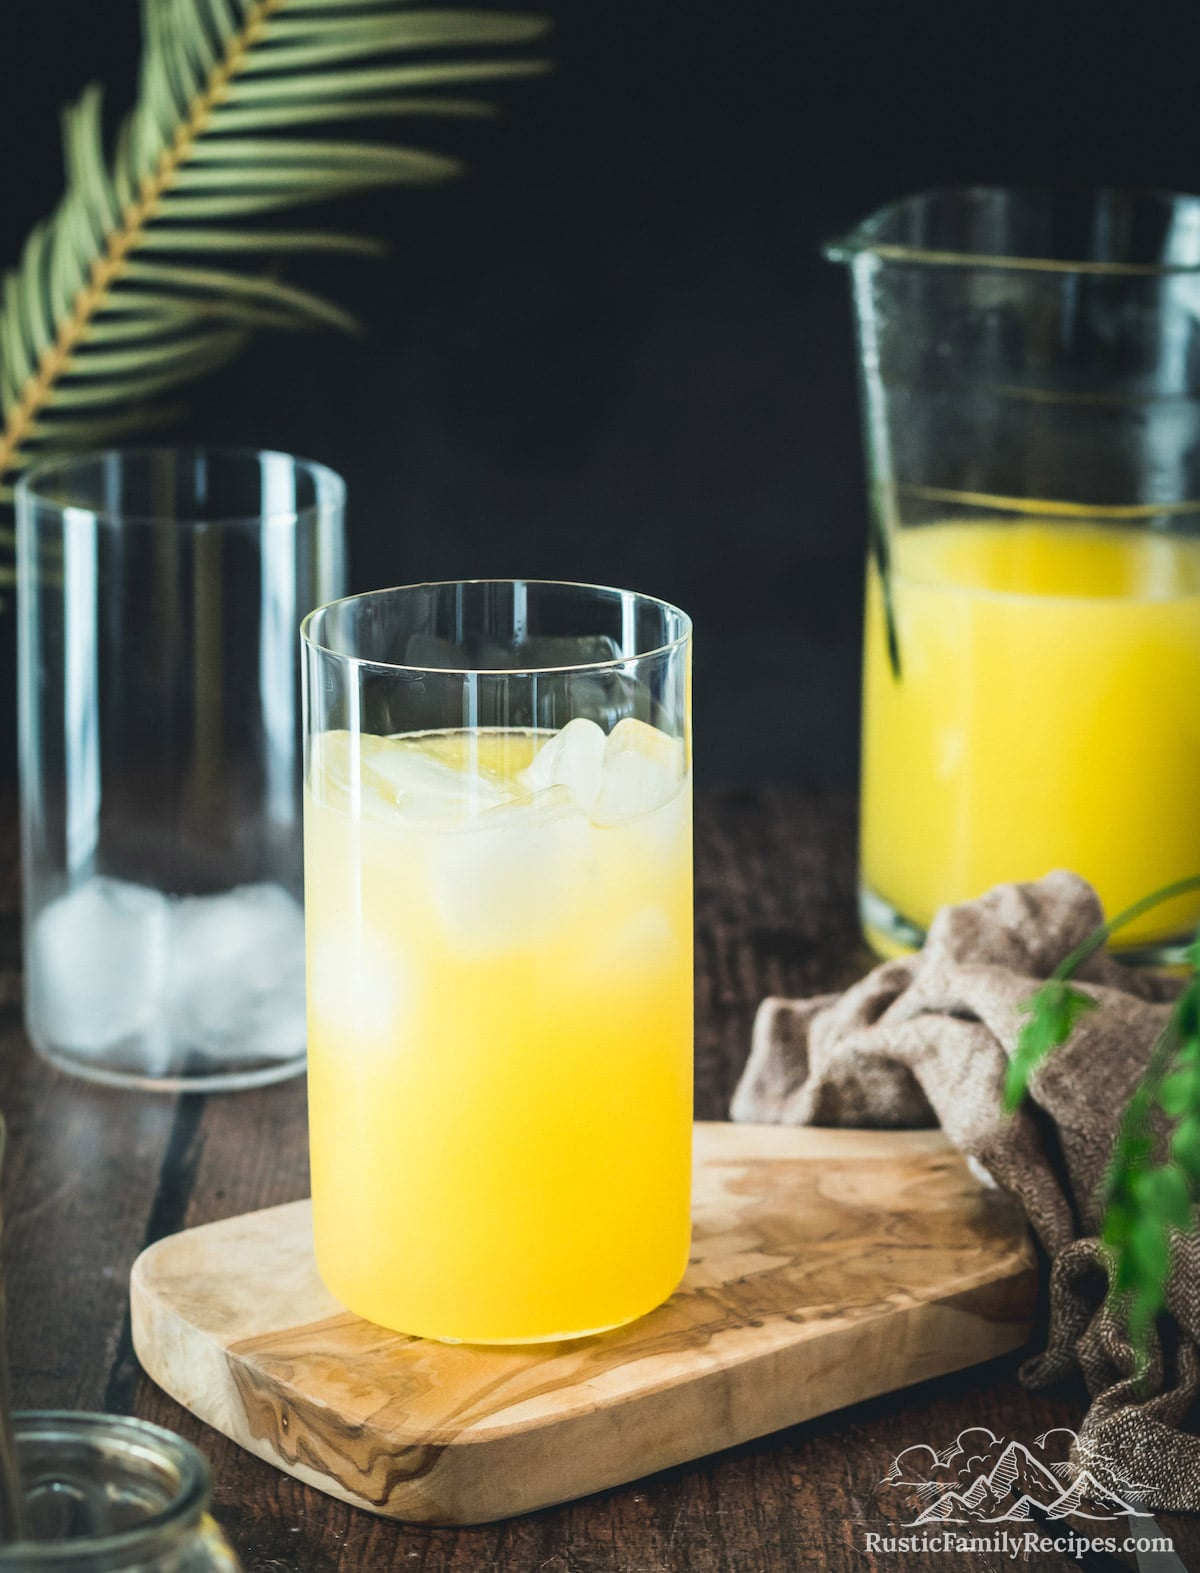 A glass of mango lemonade in front of a pitcher with lemonade